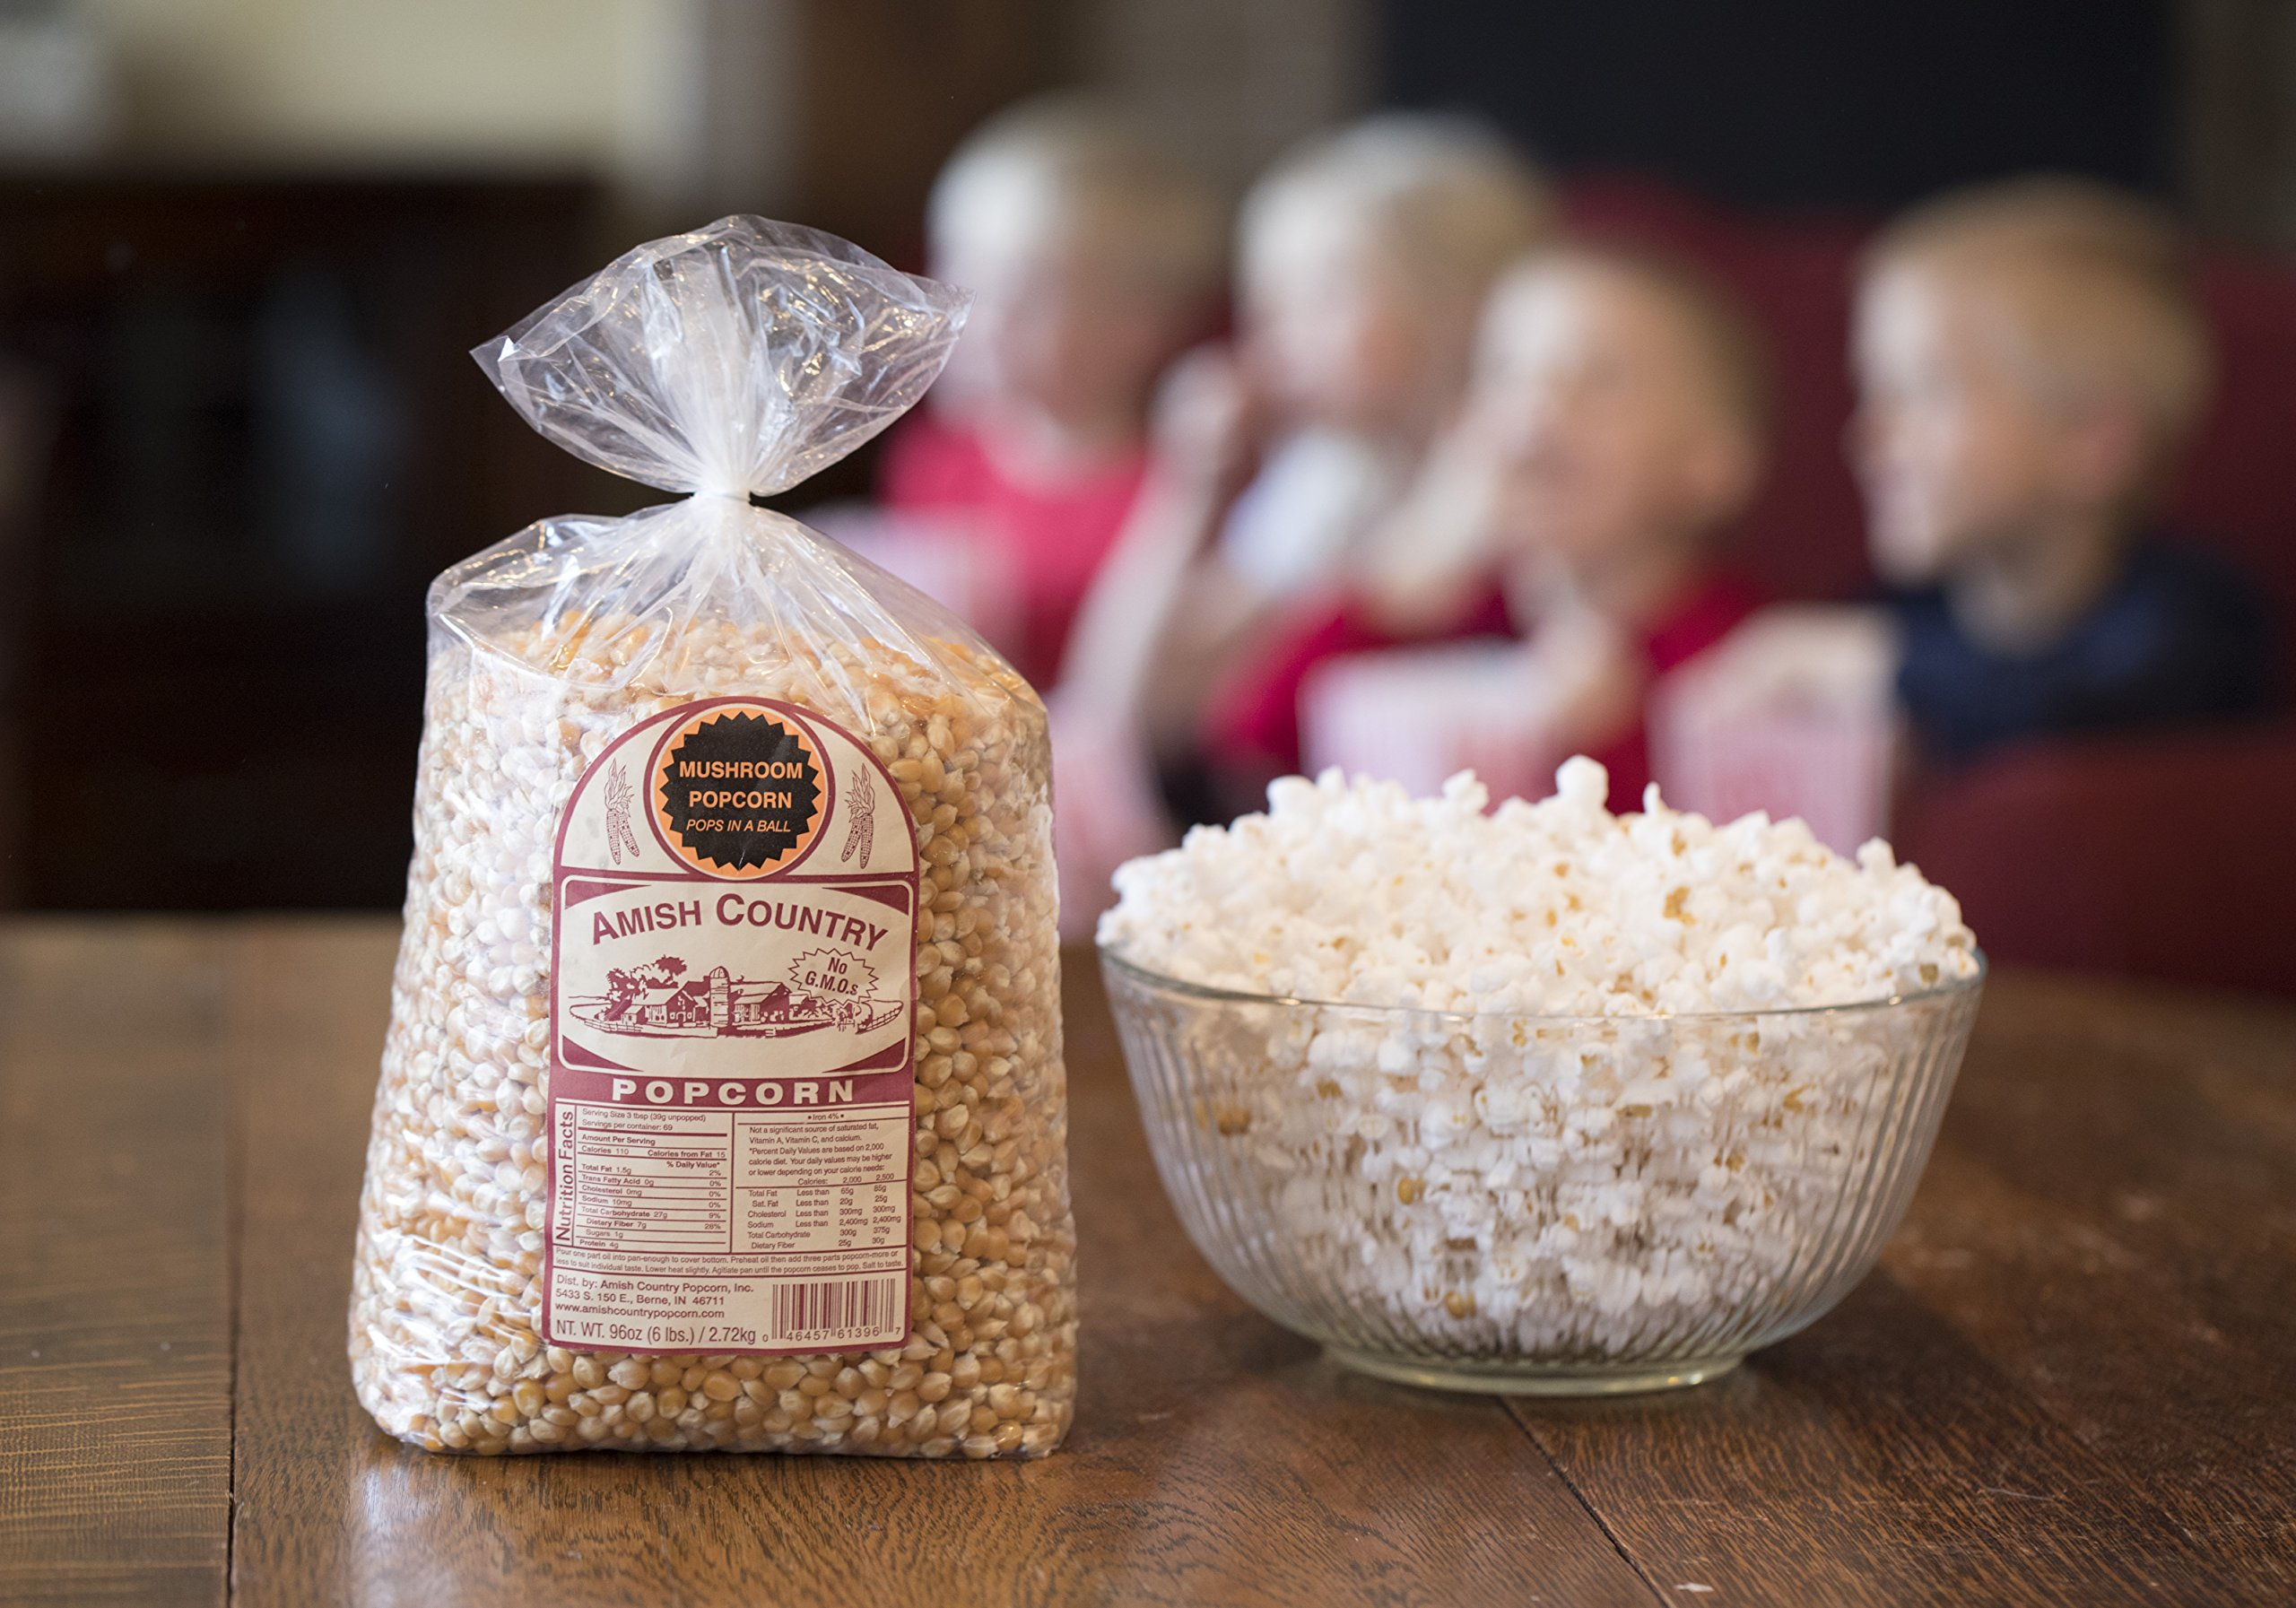 Amish Country Popcorn - Mushroom Popcorn (6 Pound Bag) - Old Fashioned, Non GMO, Gluten Free, Microwaveable, Stovetop and Air Popper Friendly - with Recipe Guide by Amish Country Popcorn (Image #4)